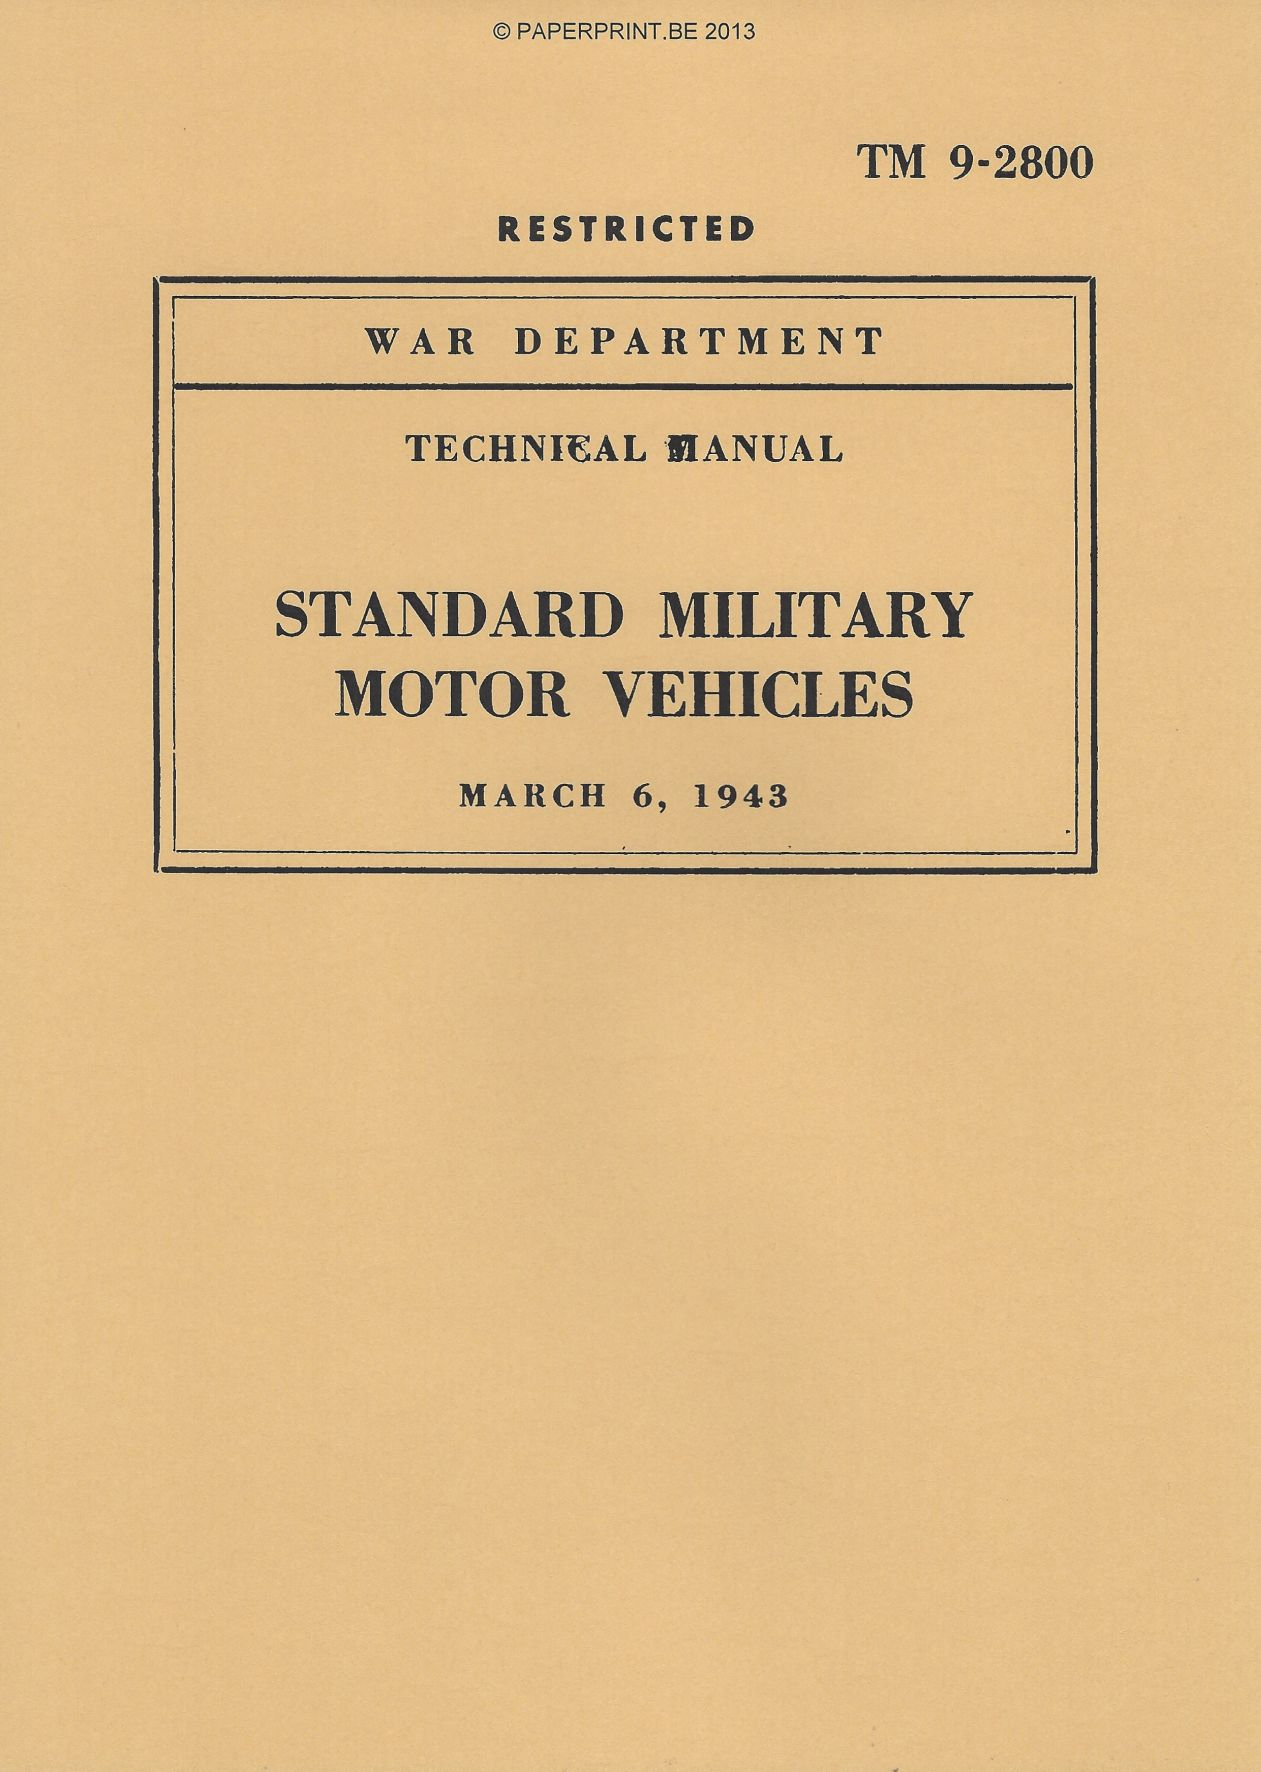 TM 9-2800 EARLY 1943 US STANDARD MILITARY MOTOR VEHICLES